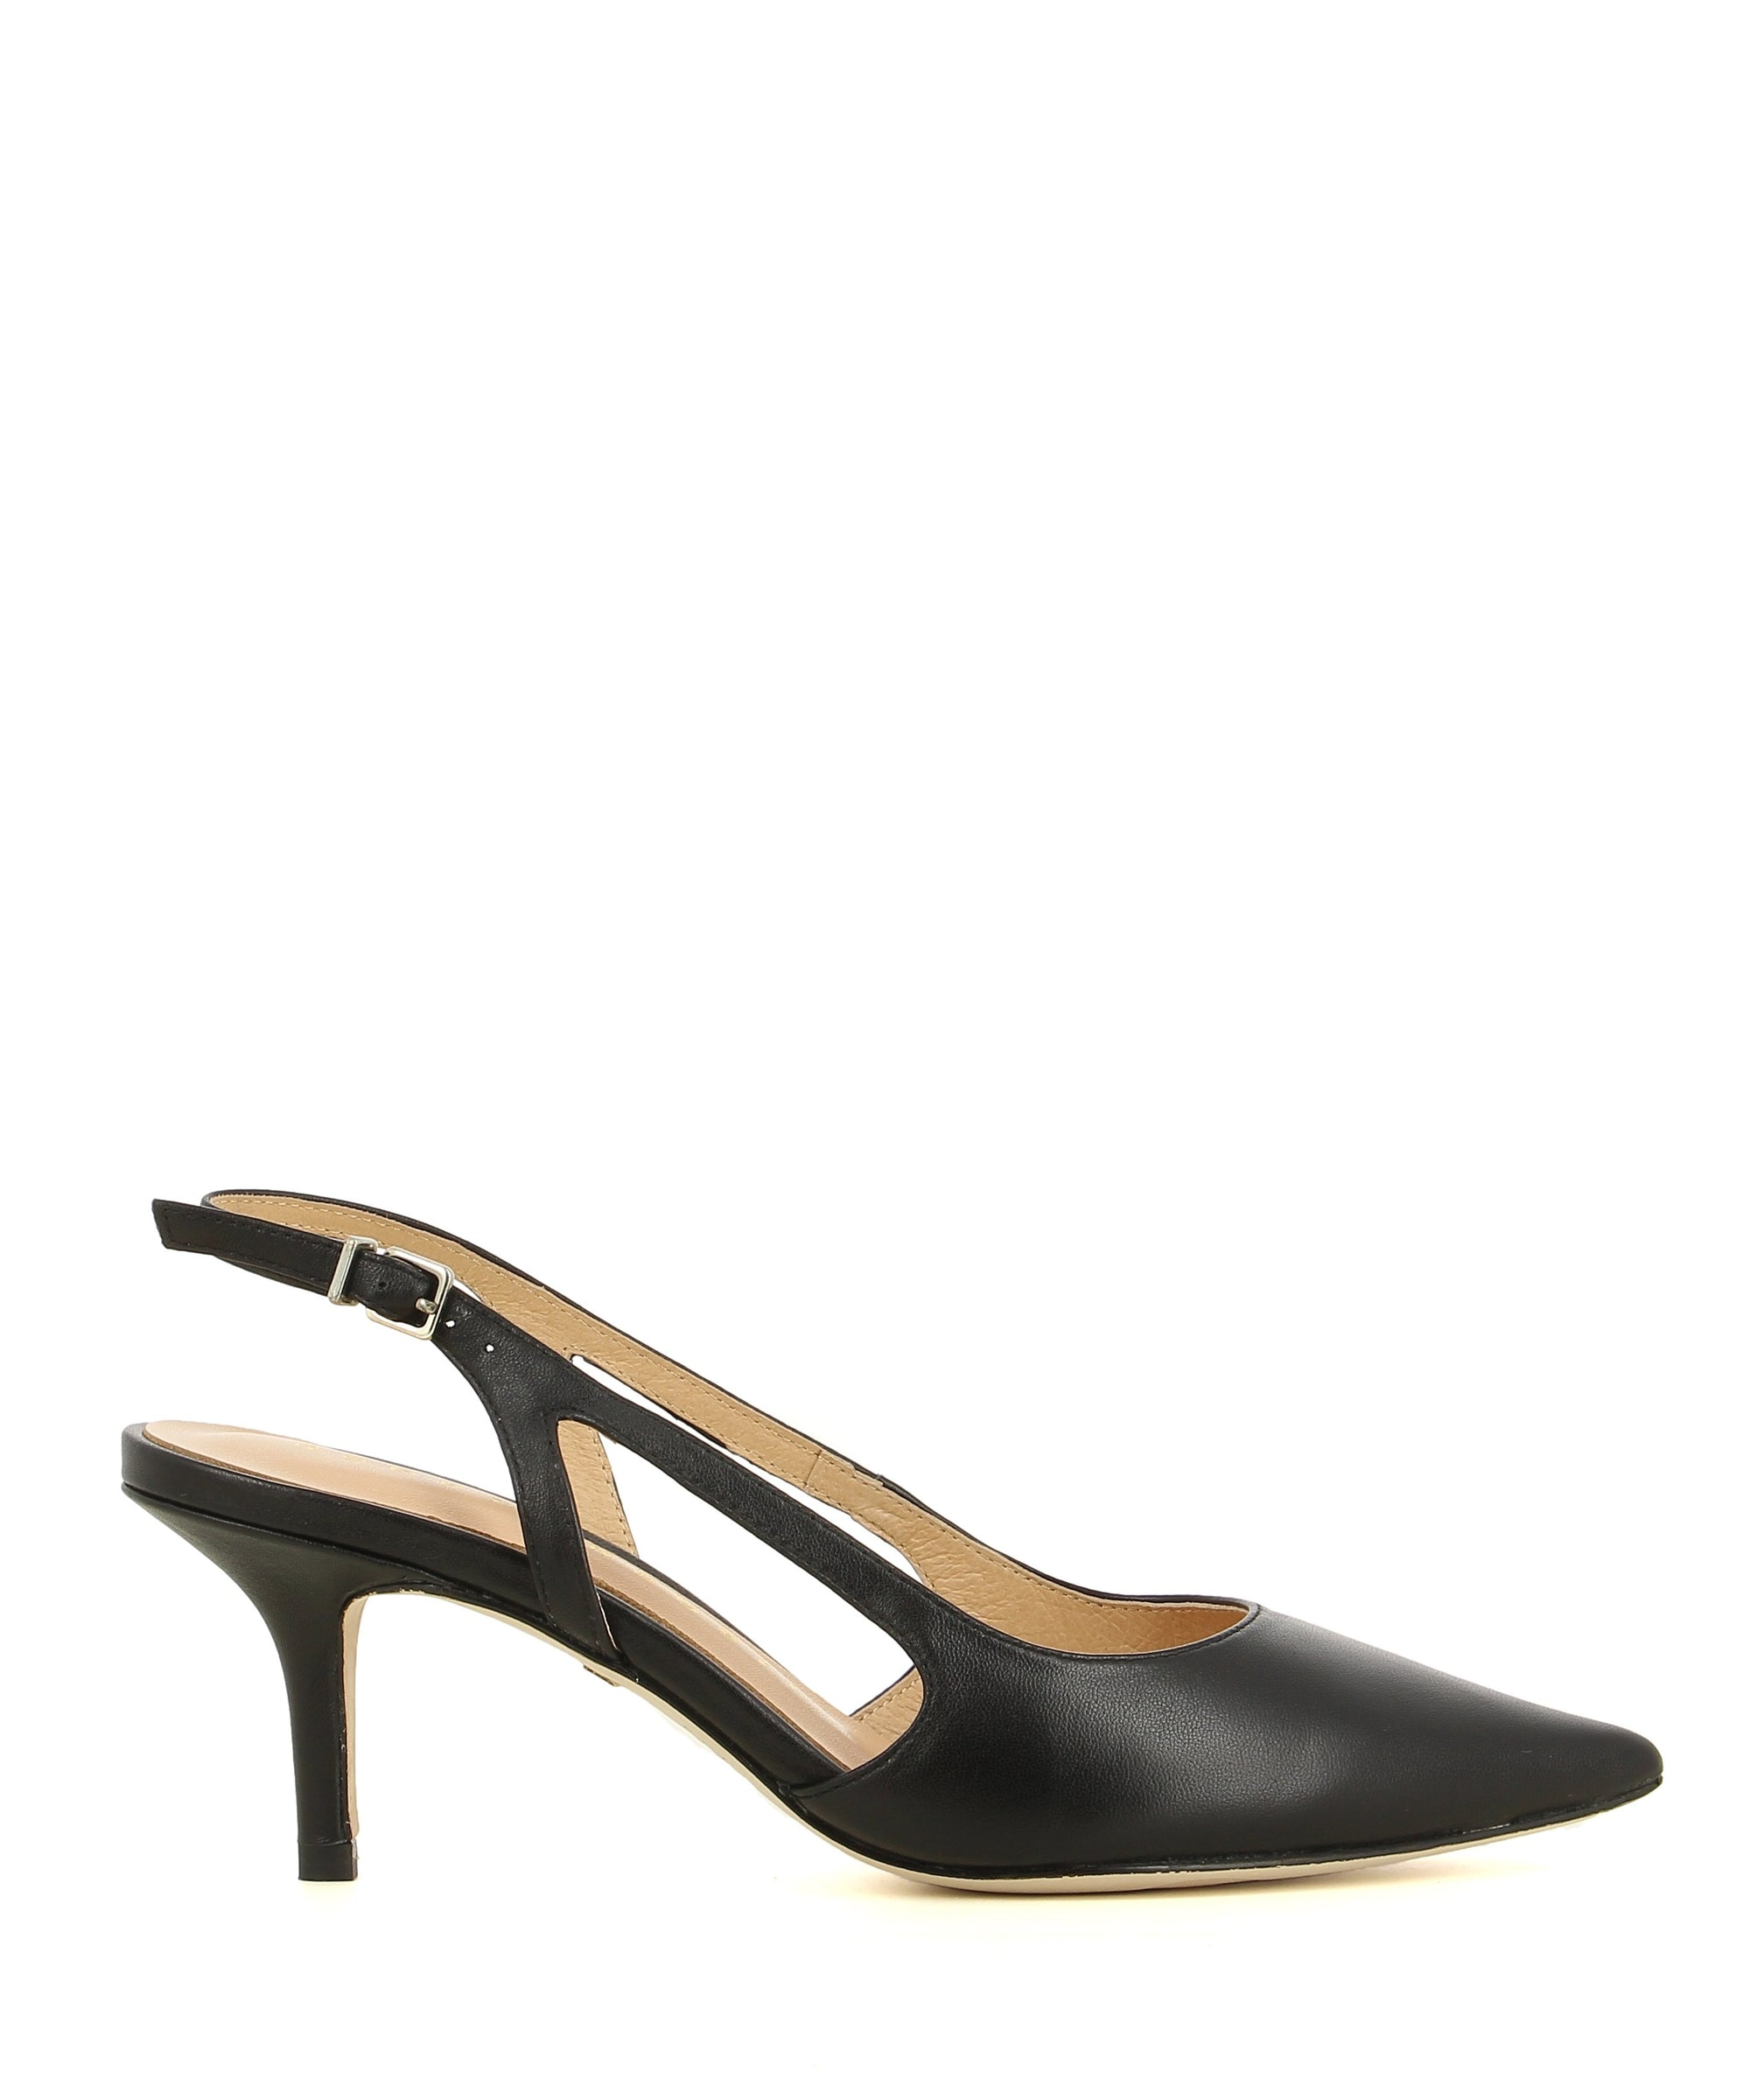 A stylish black leather pump by Robert Robert. The 'Cleo' features a slingback strap with a buckle fastening, cut out sides, and a pointed toe.